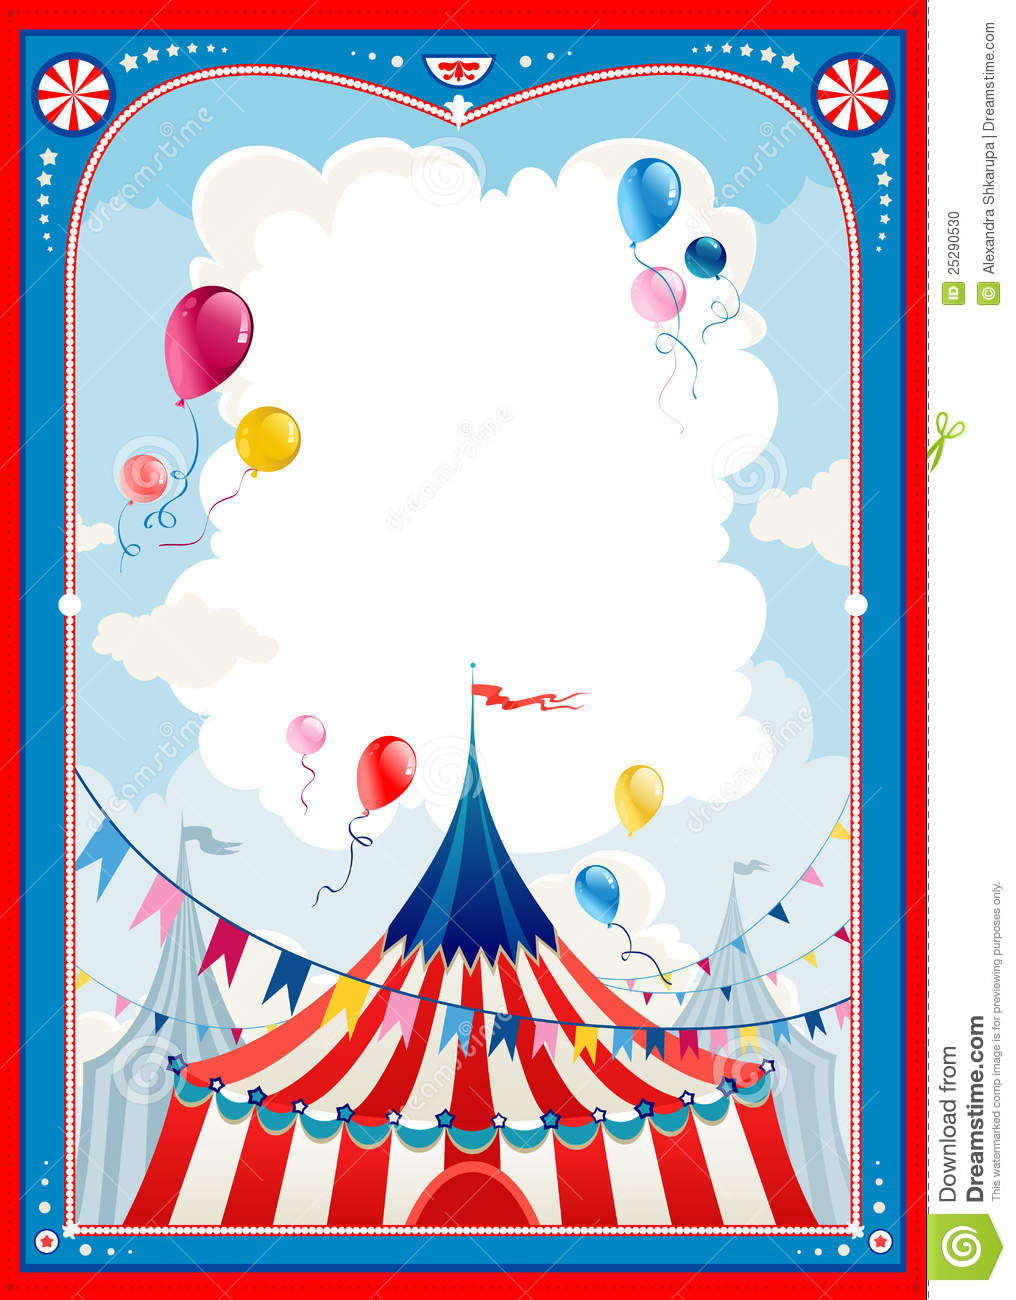 Circus Frame Stock Photo - Image: 25290530